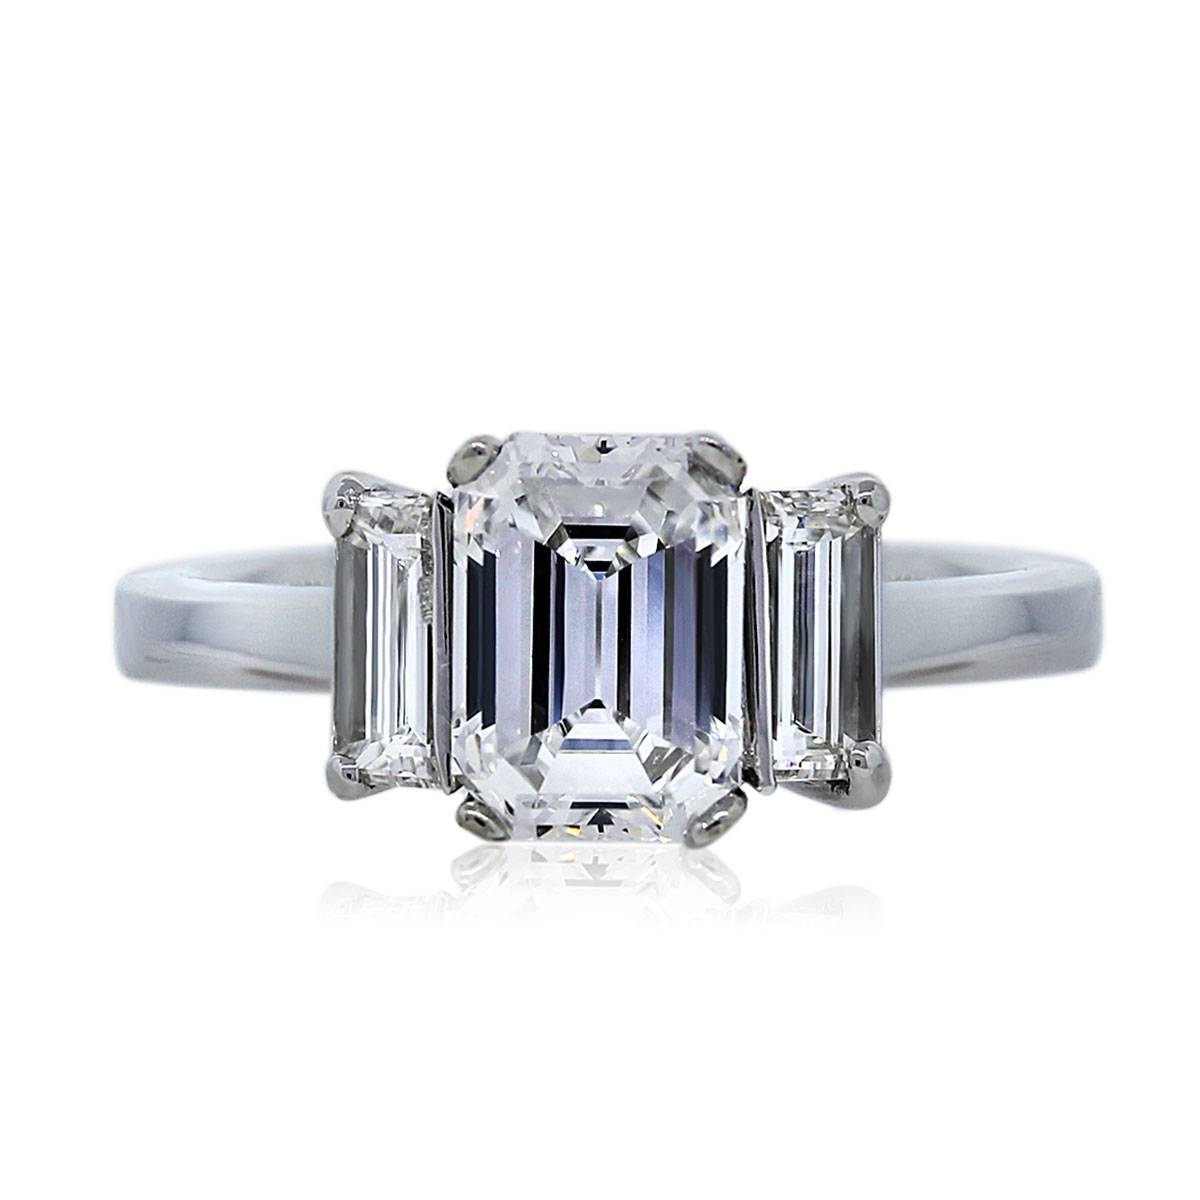 1.59 Carat Emerald Cut Three Stone Diamond Engagement Ring Boca Raton With Regard To Baguette Cut Diamond Engagement Rings (Gallery 4 of 15)